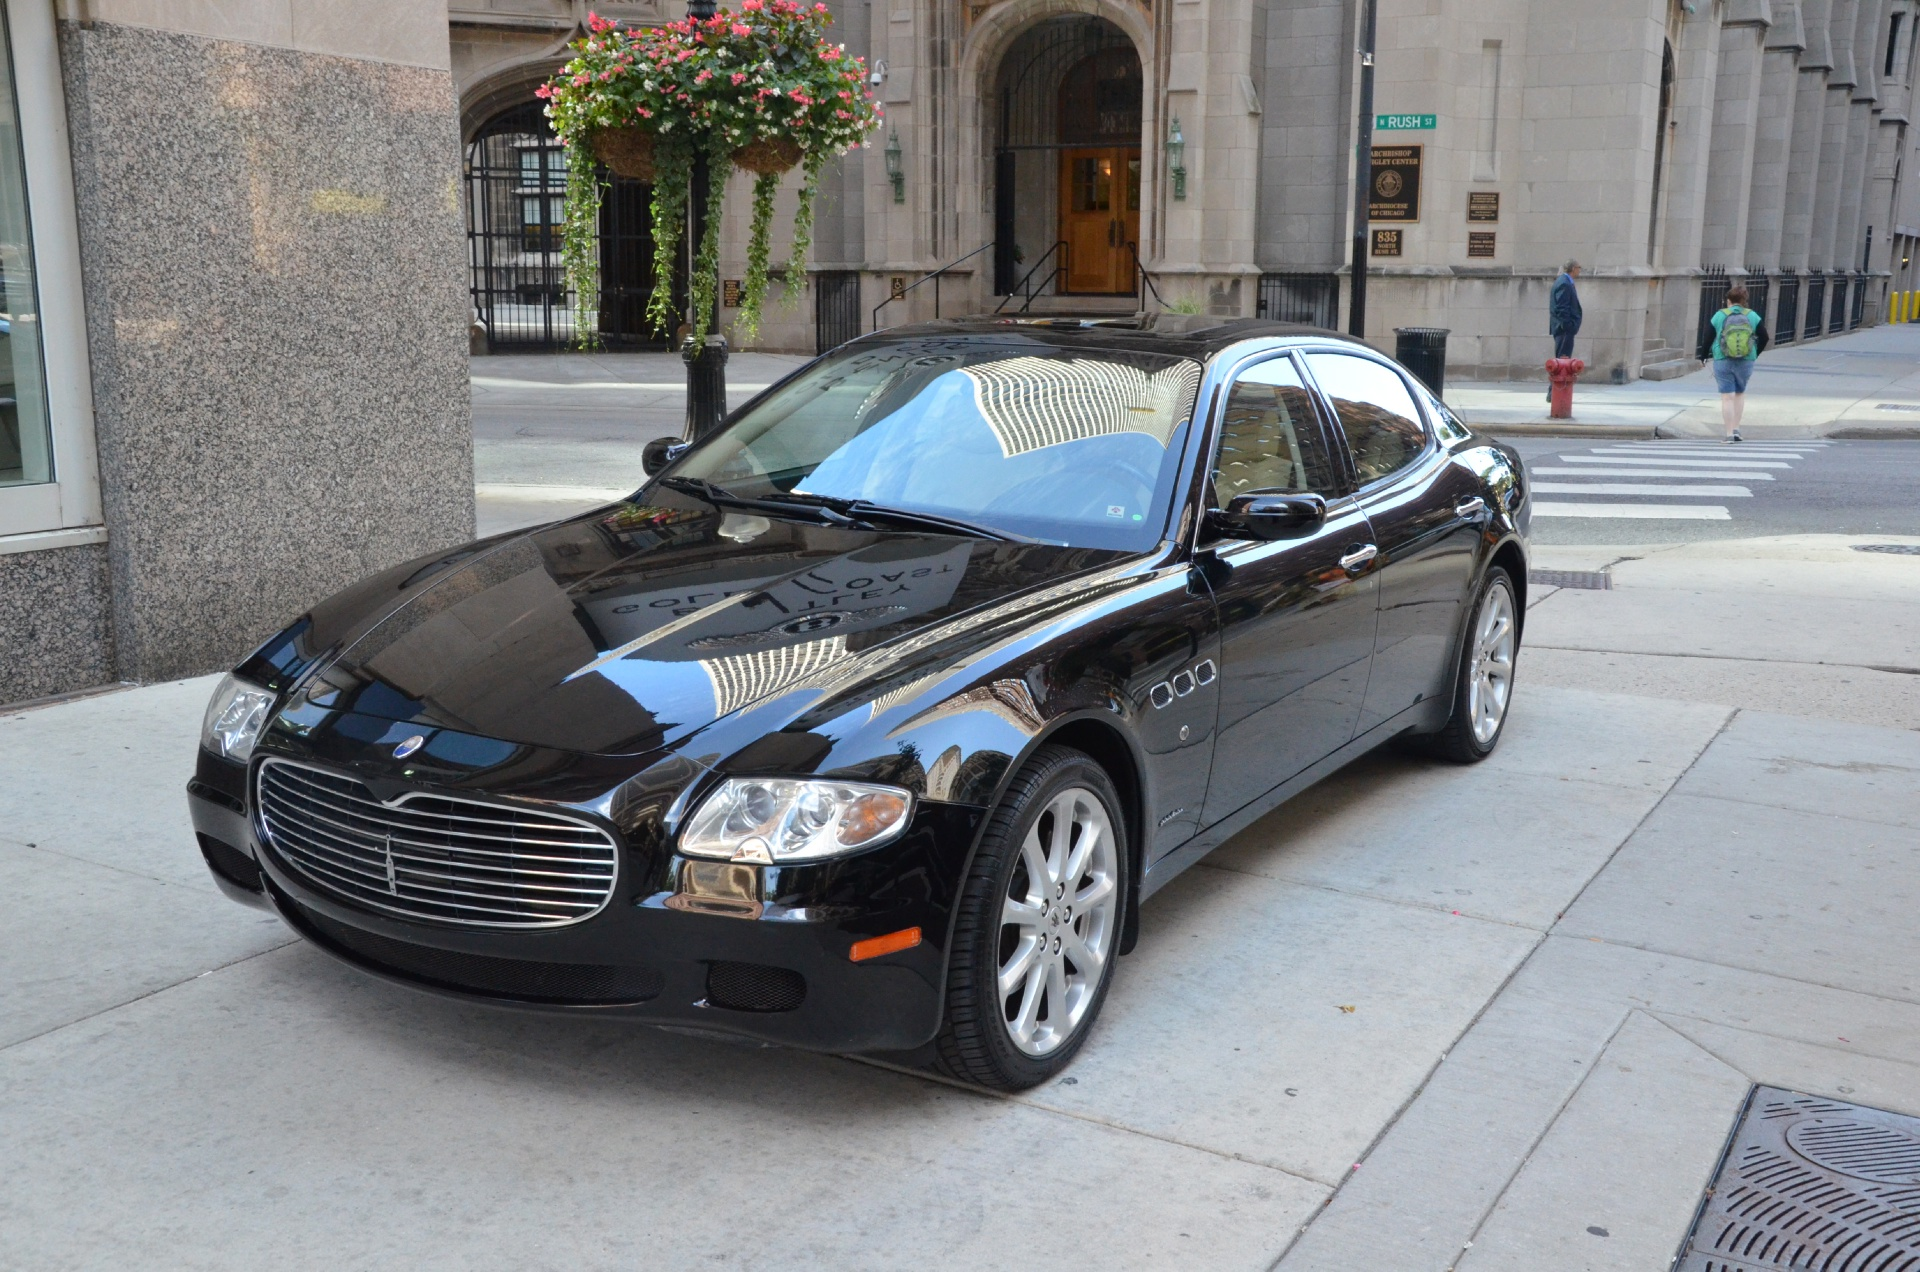 2005 maserati quattroporte used bentley used rolls. Black Bedroom Furniture Sets. Home Design Ideas